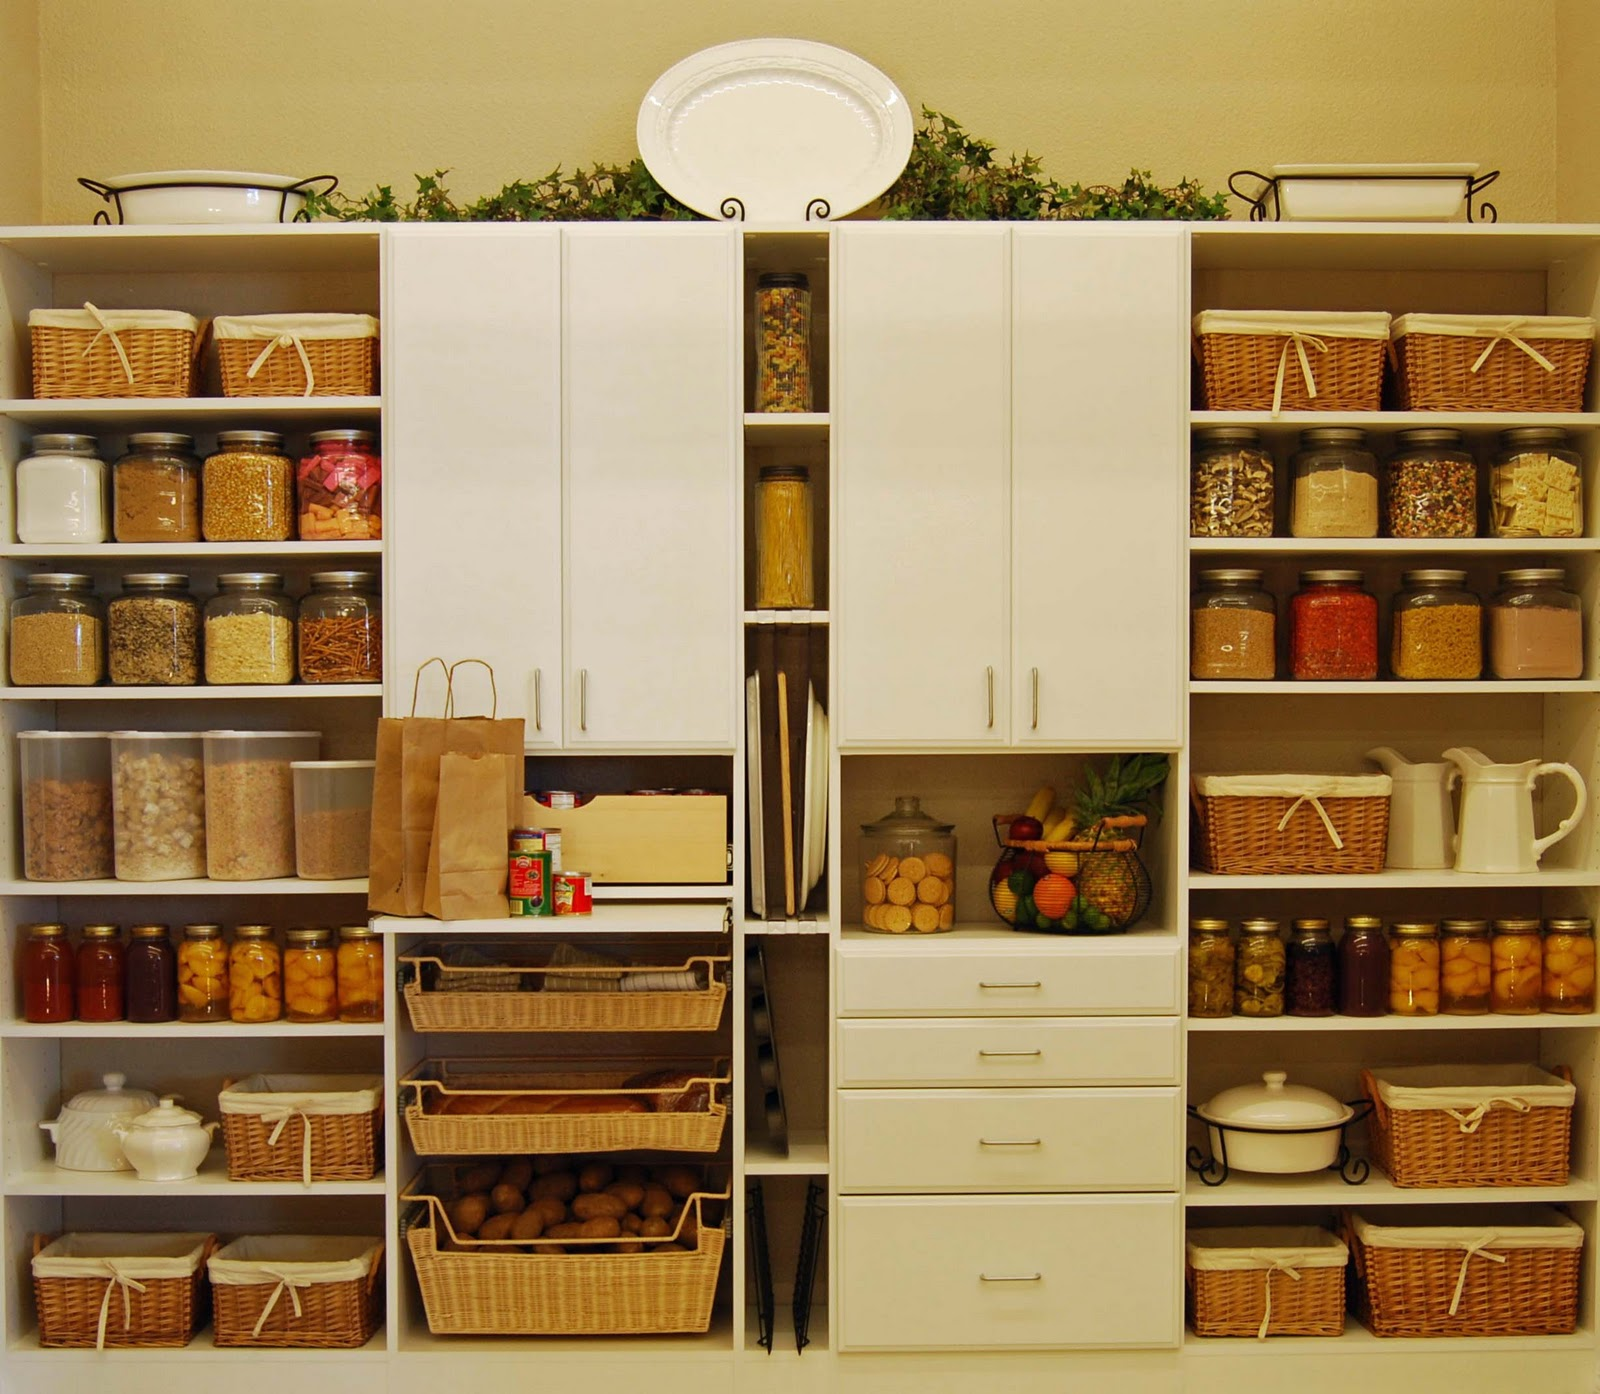 & 15 Kitchen Pantry Ideas With Form And Function